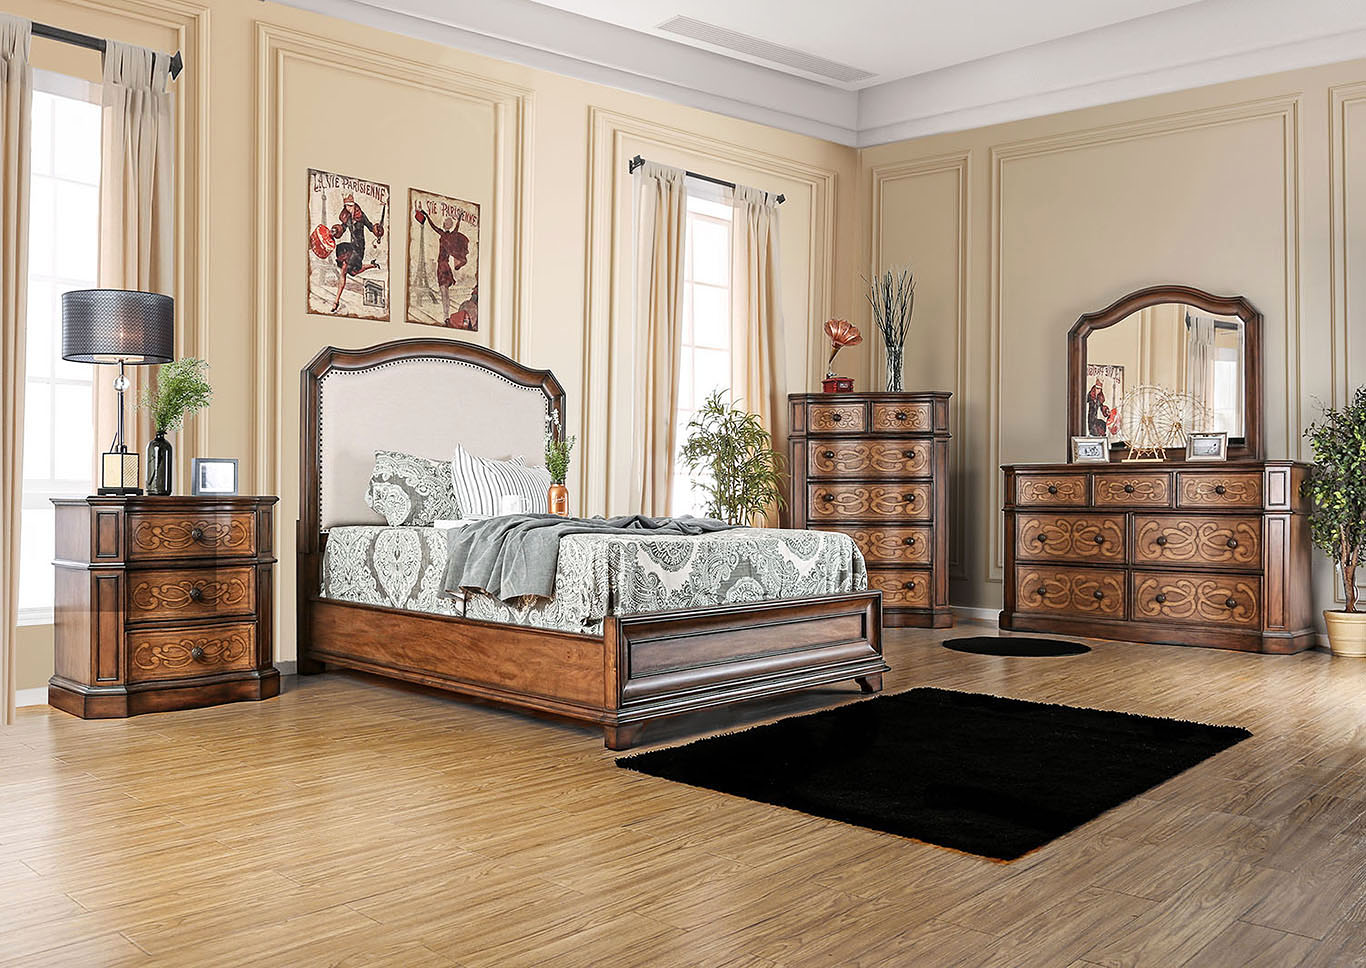 Emmaline Warm Chestnut Upholstered Platform Queen Bed,Furniture of America